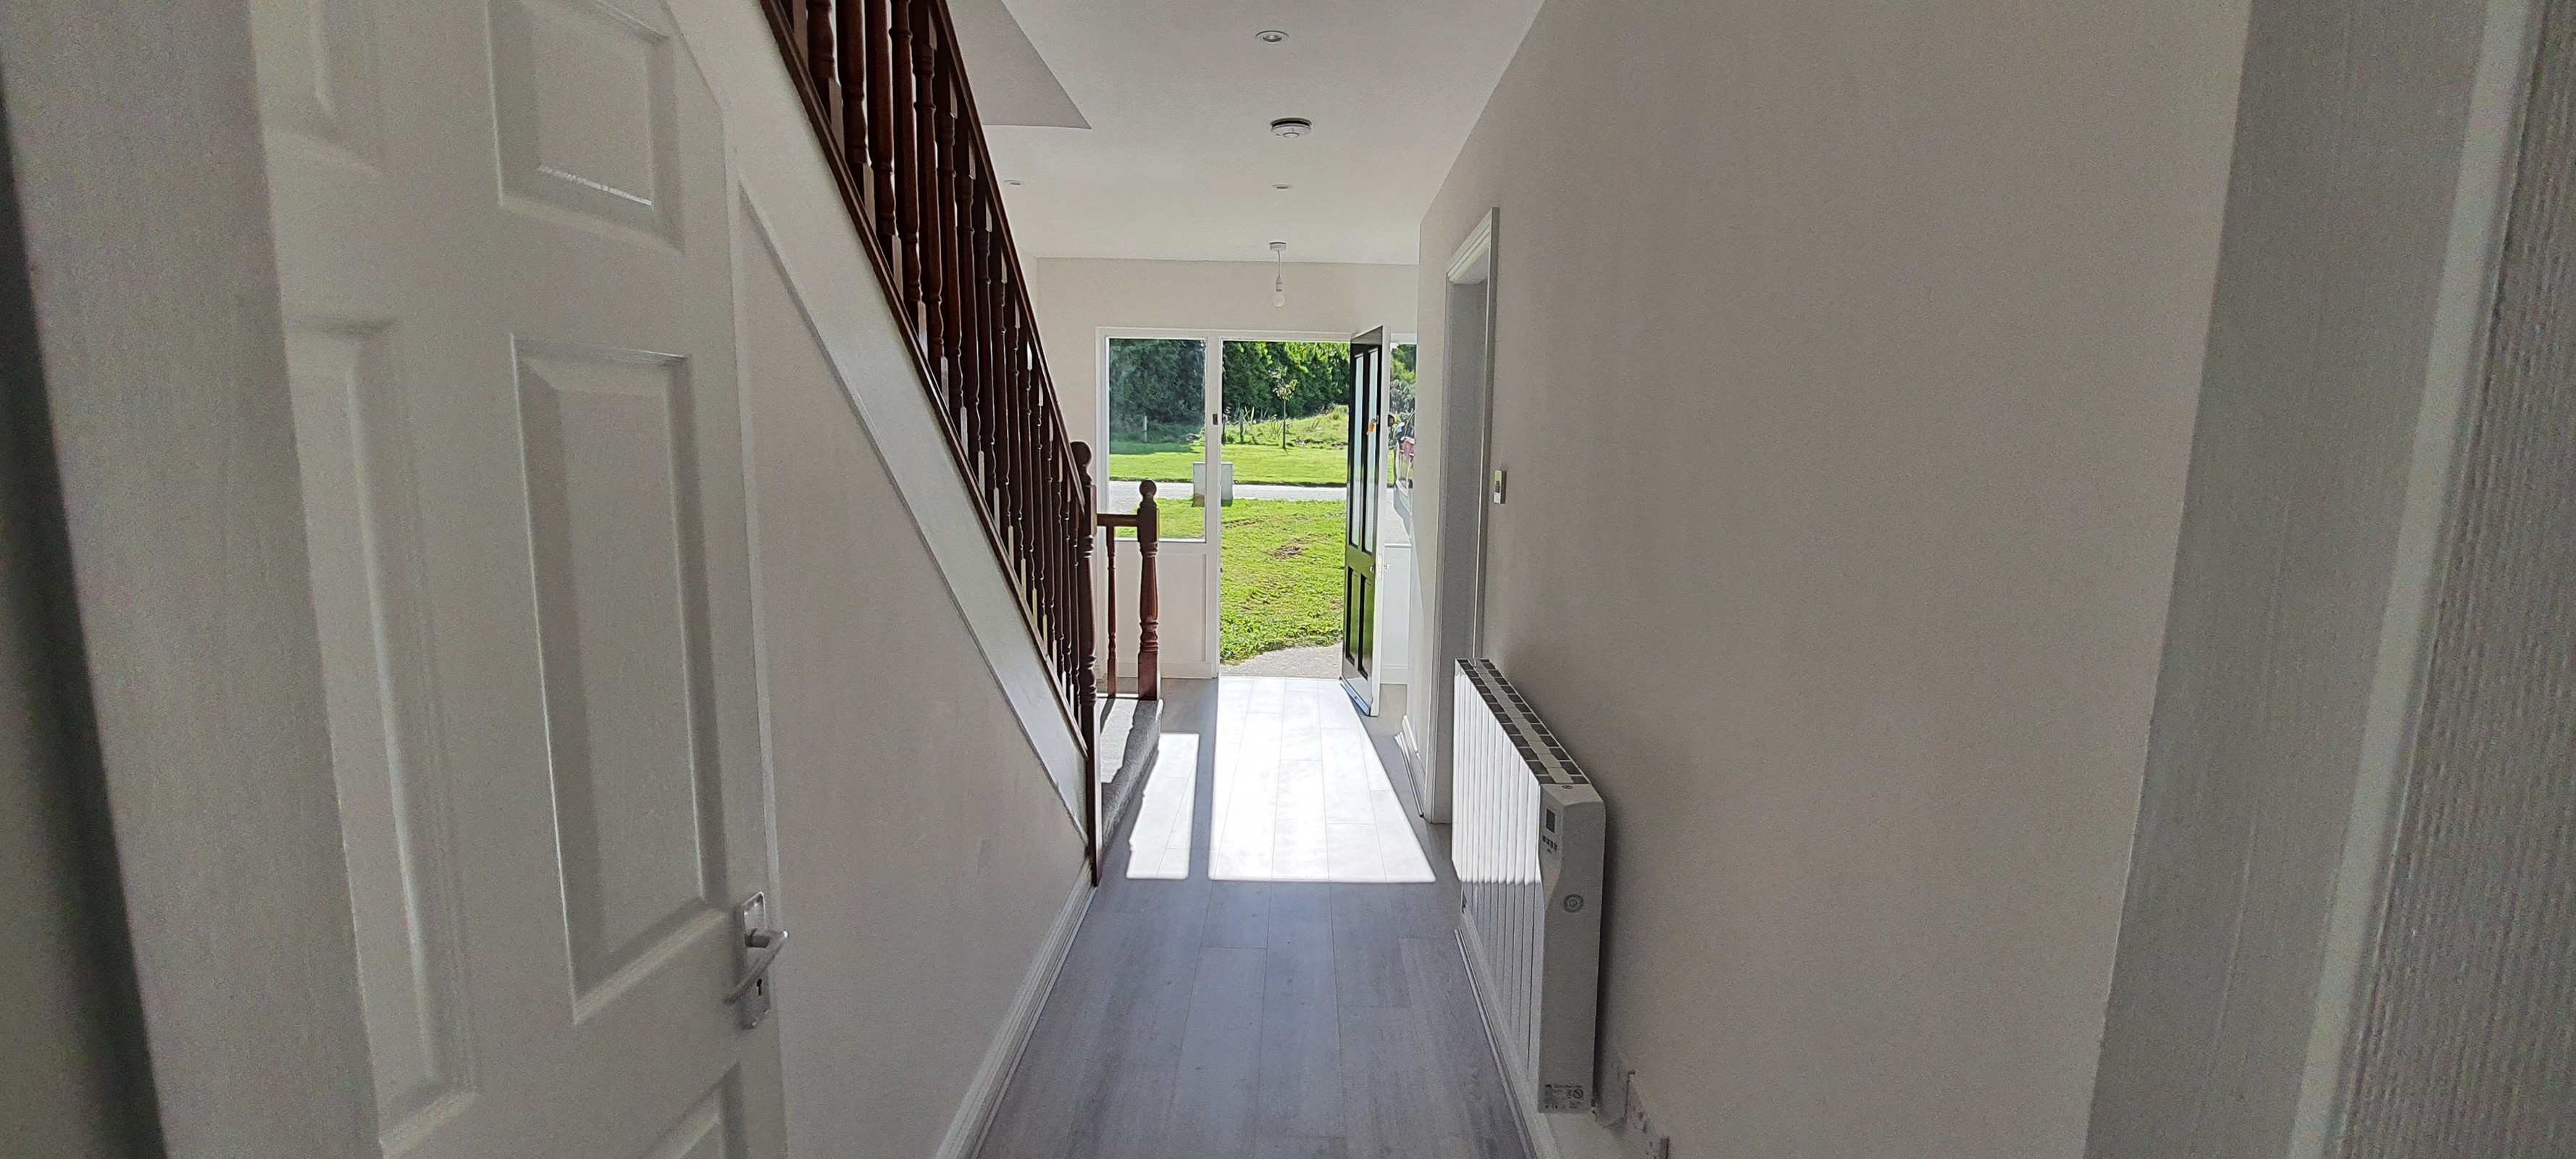 7 Branogue Park, Gorey, Co. Wexford